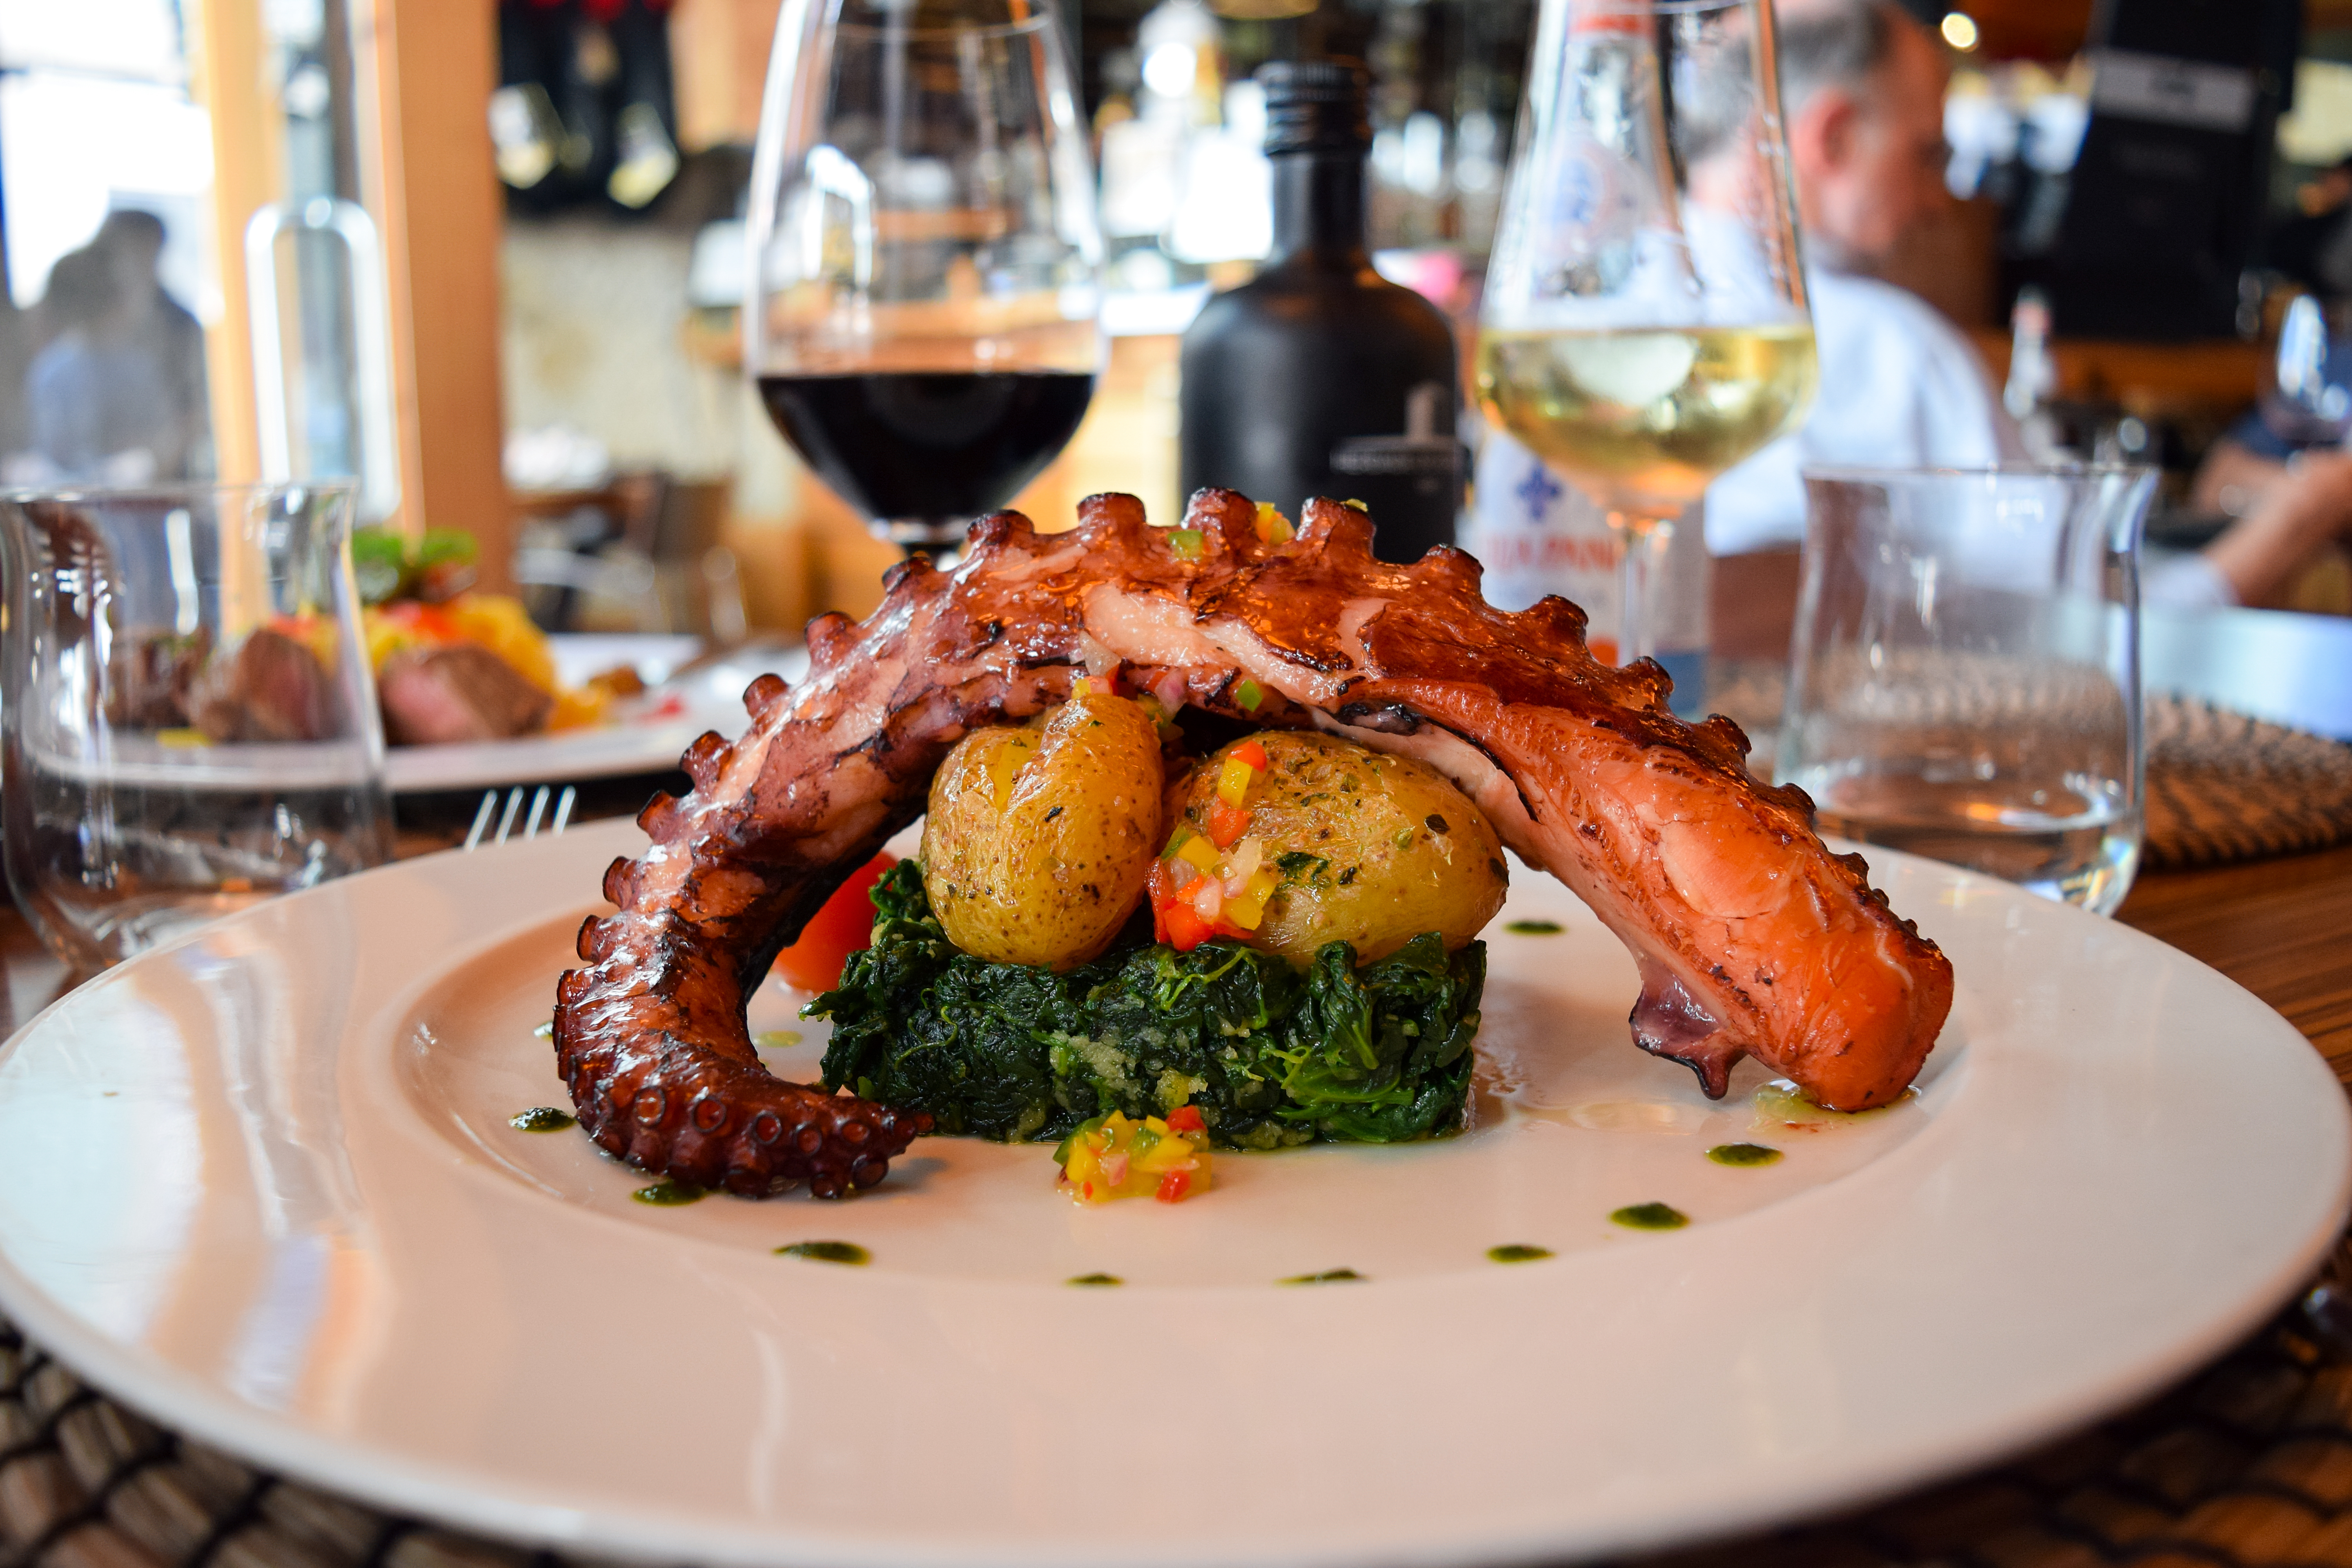 Grilles octopus, potato, red wine glass